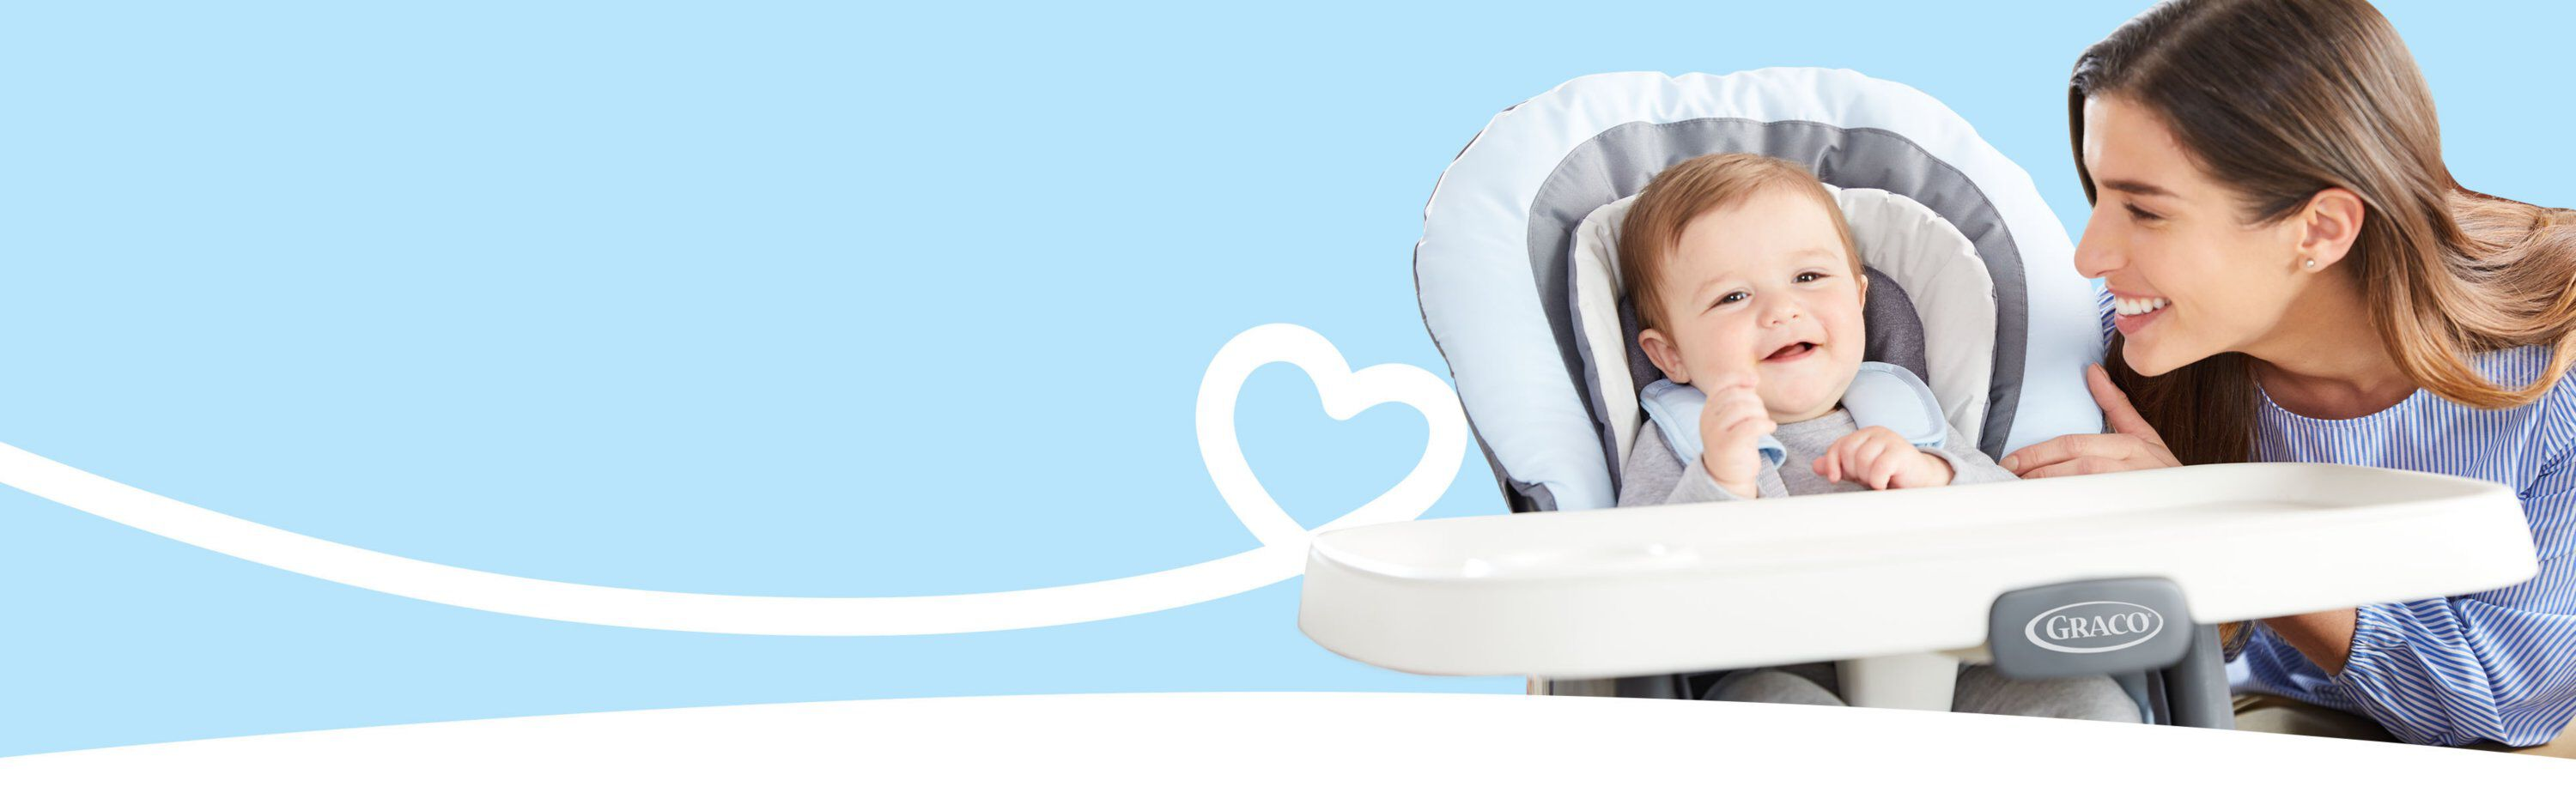 mother playing with child inside high chair banner